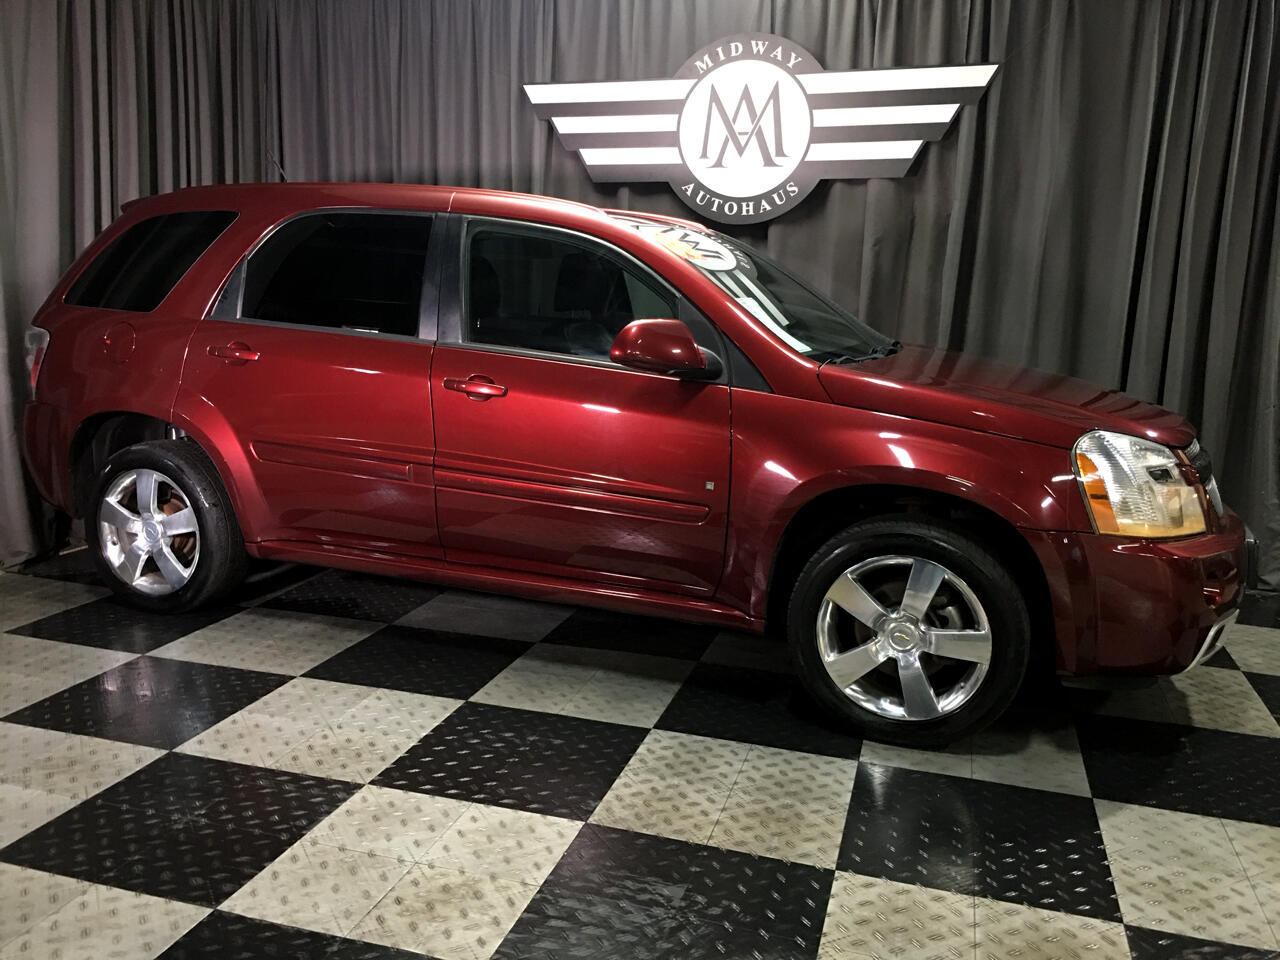 Pre-Owned 2008 Chevrolet Equinox AWD 4dr Sport